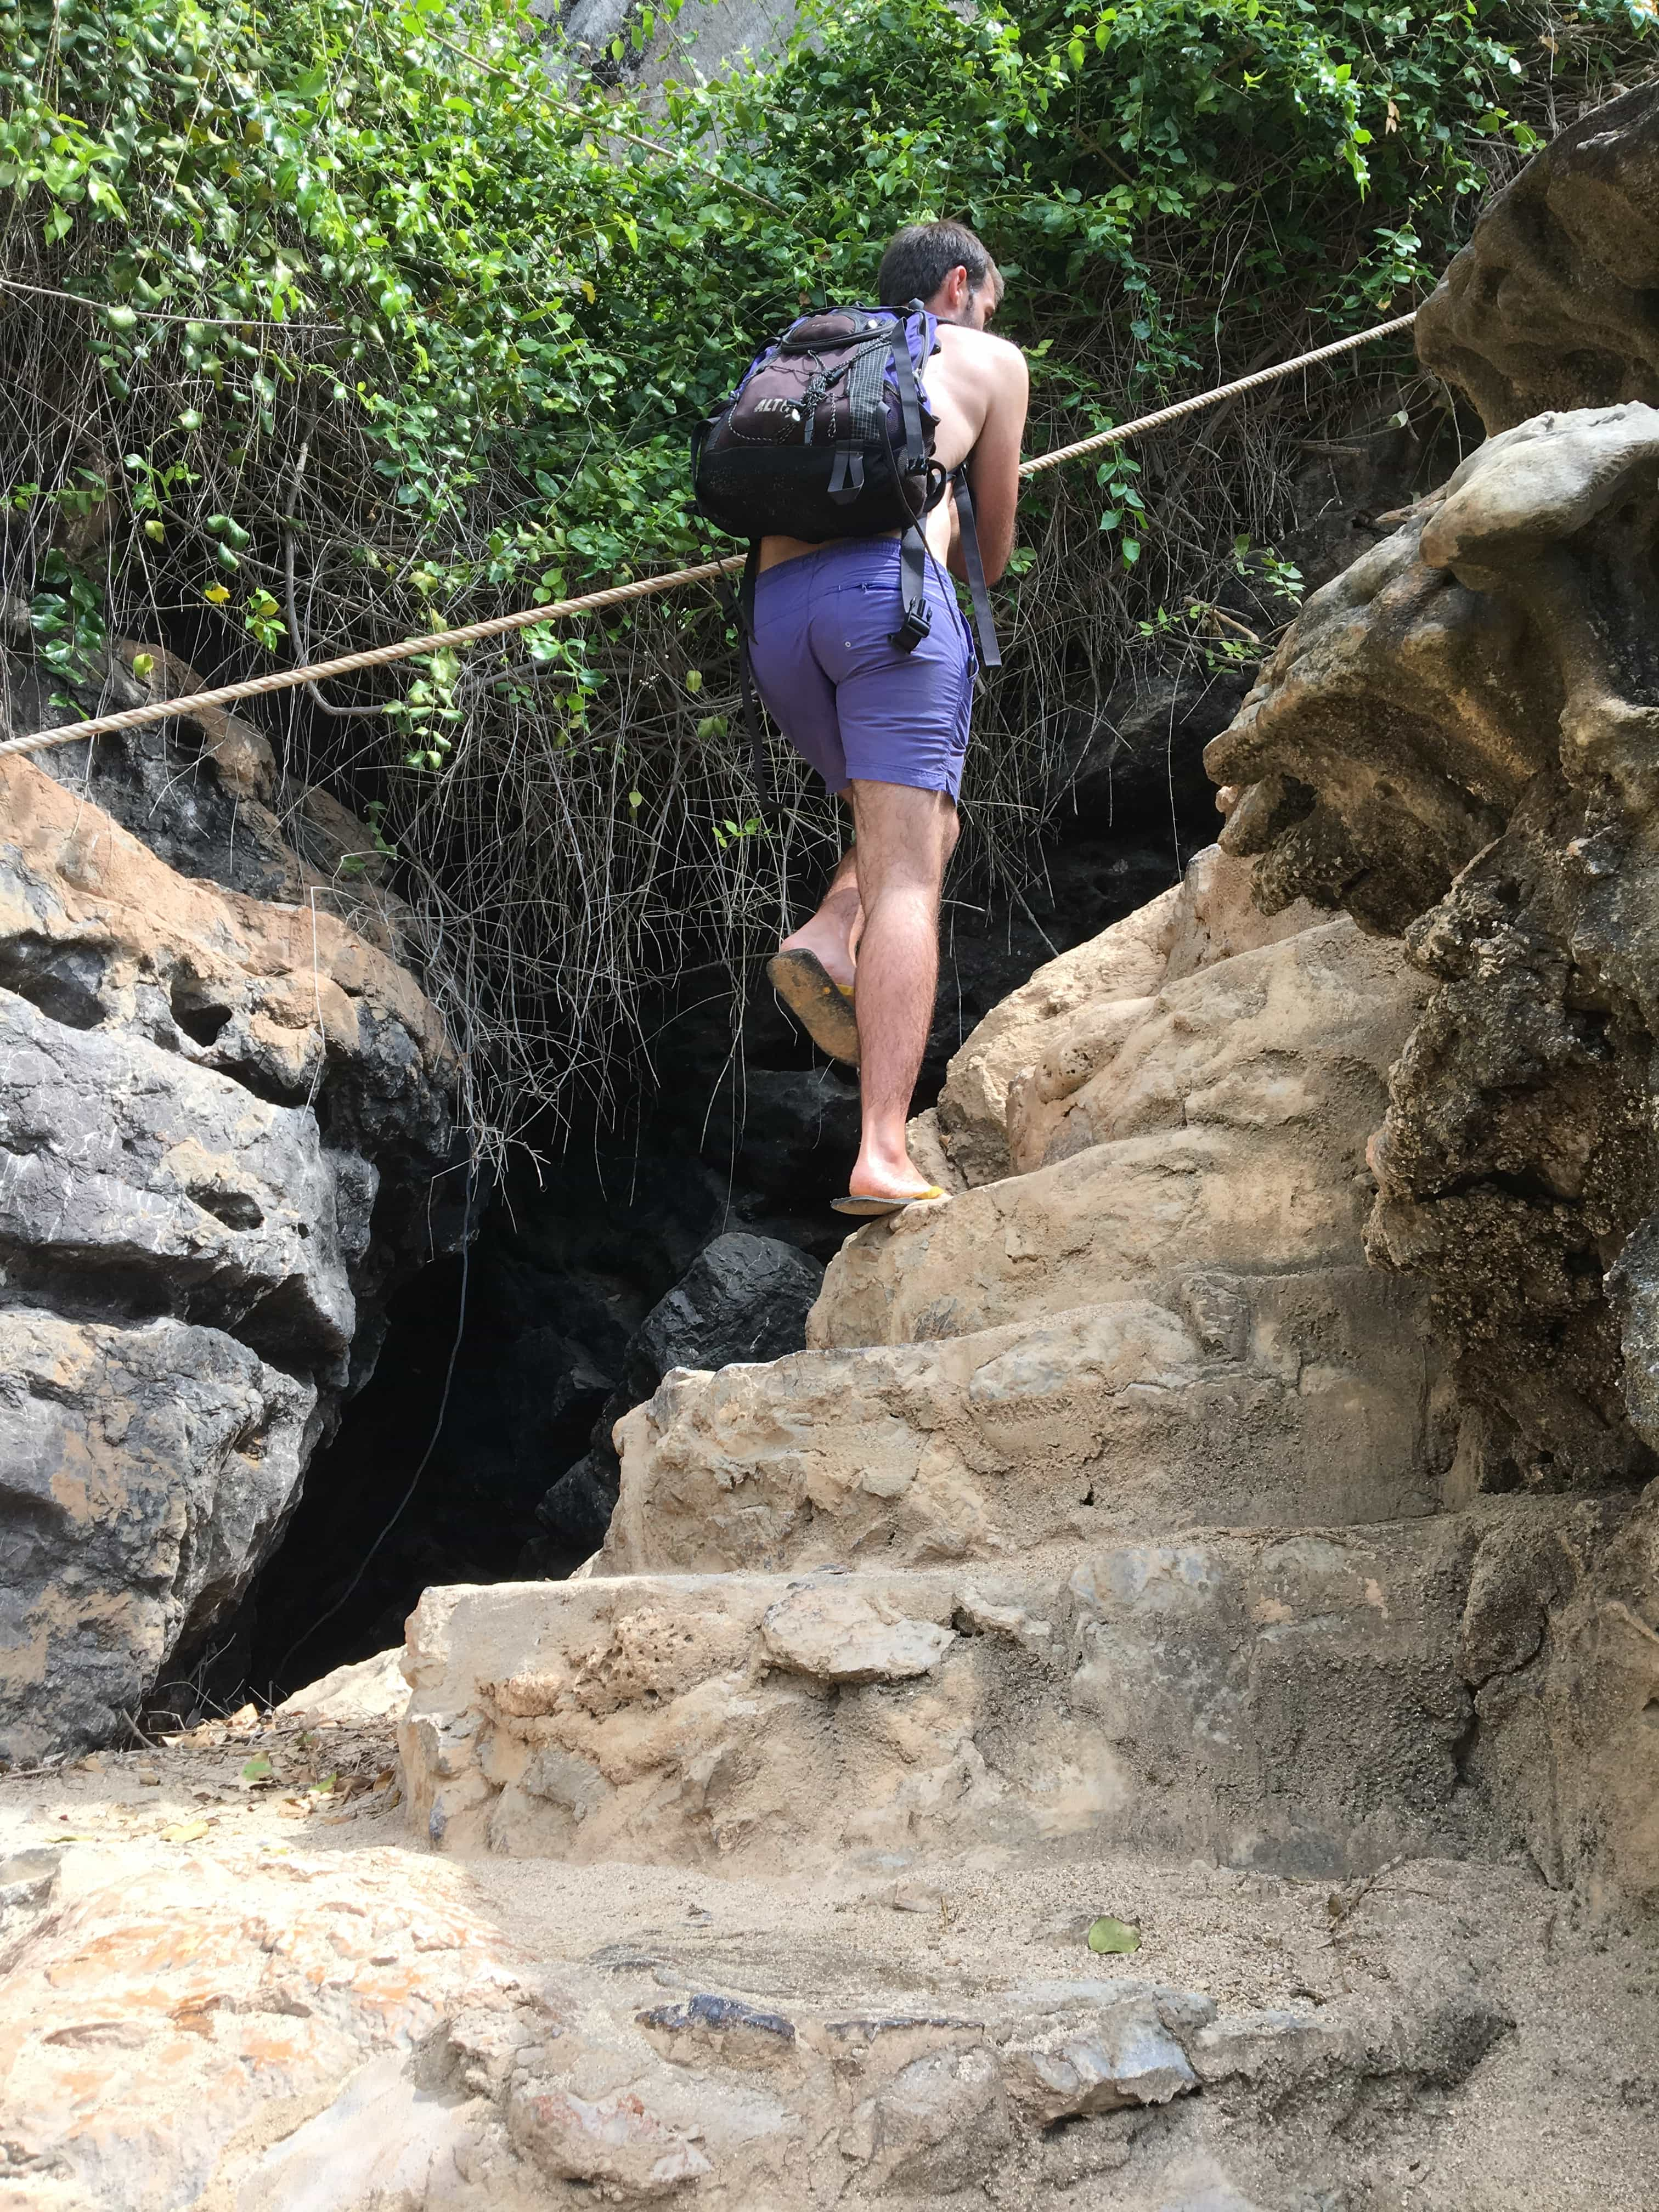 Climbing at Thailand beaches